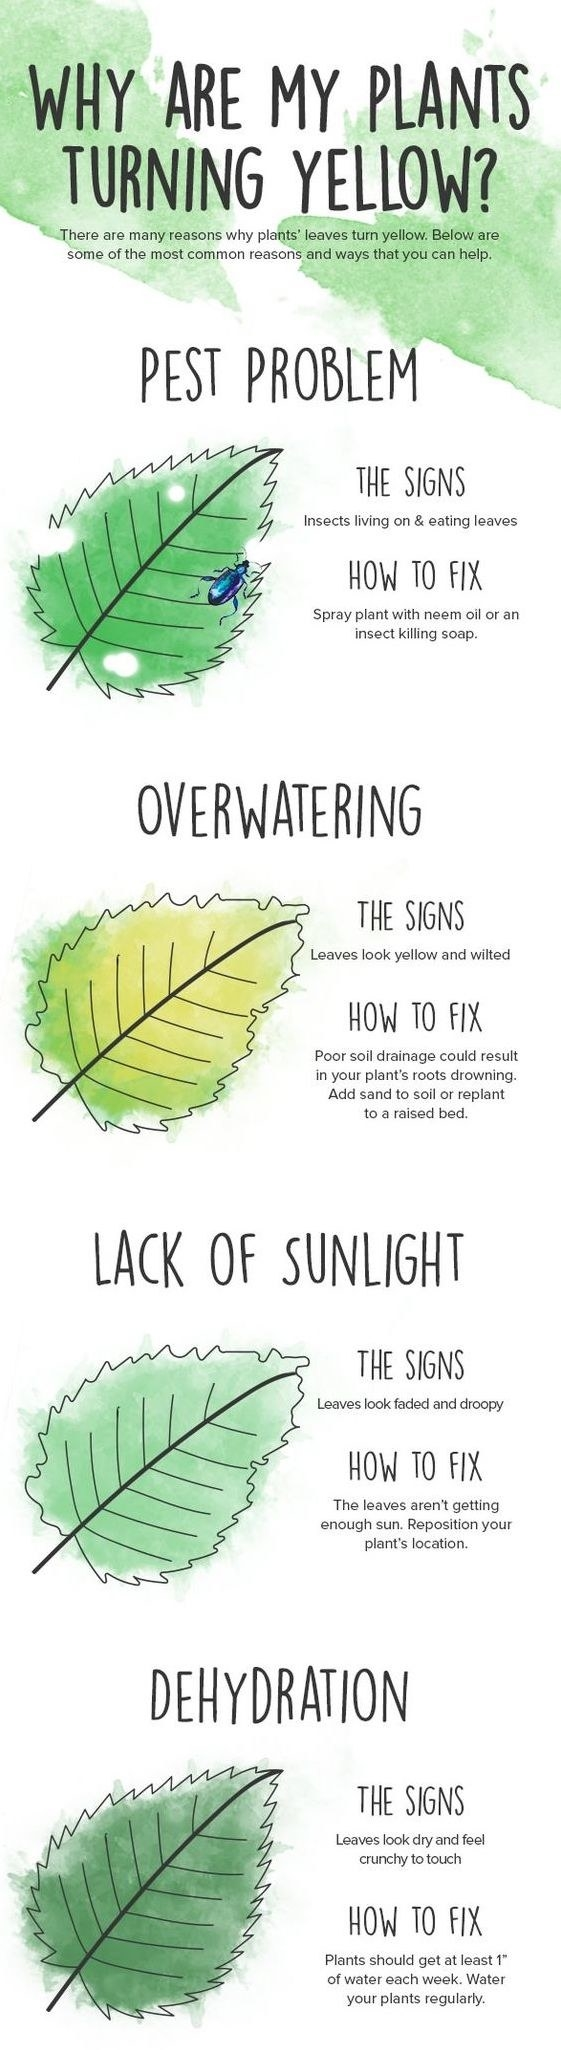 guide that shows that leaf problems could be a sign of dehydration, lack of sunlight, overwatering, or a pest problem)